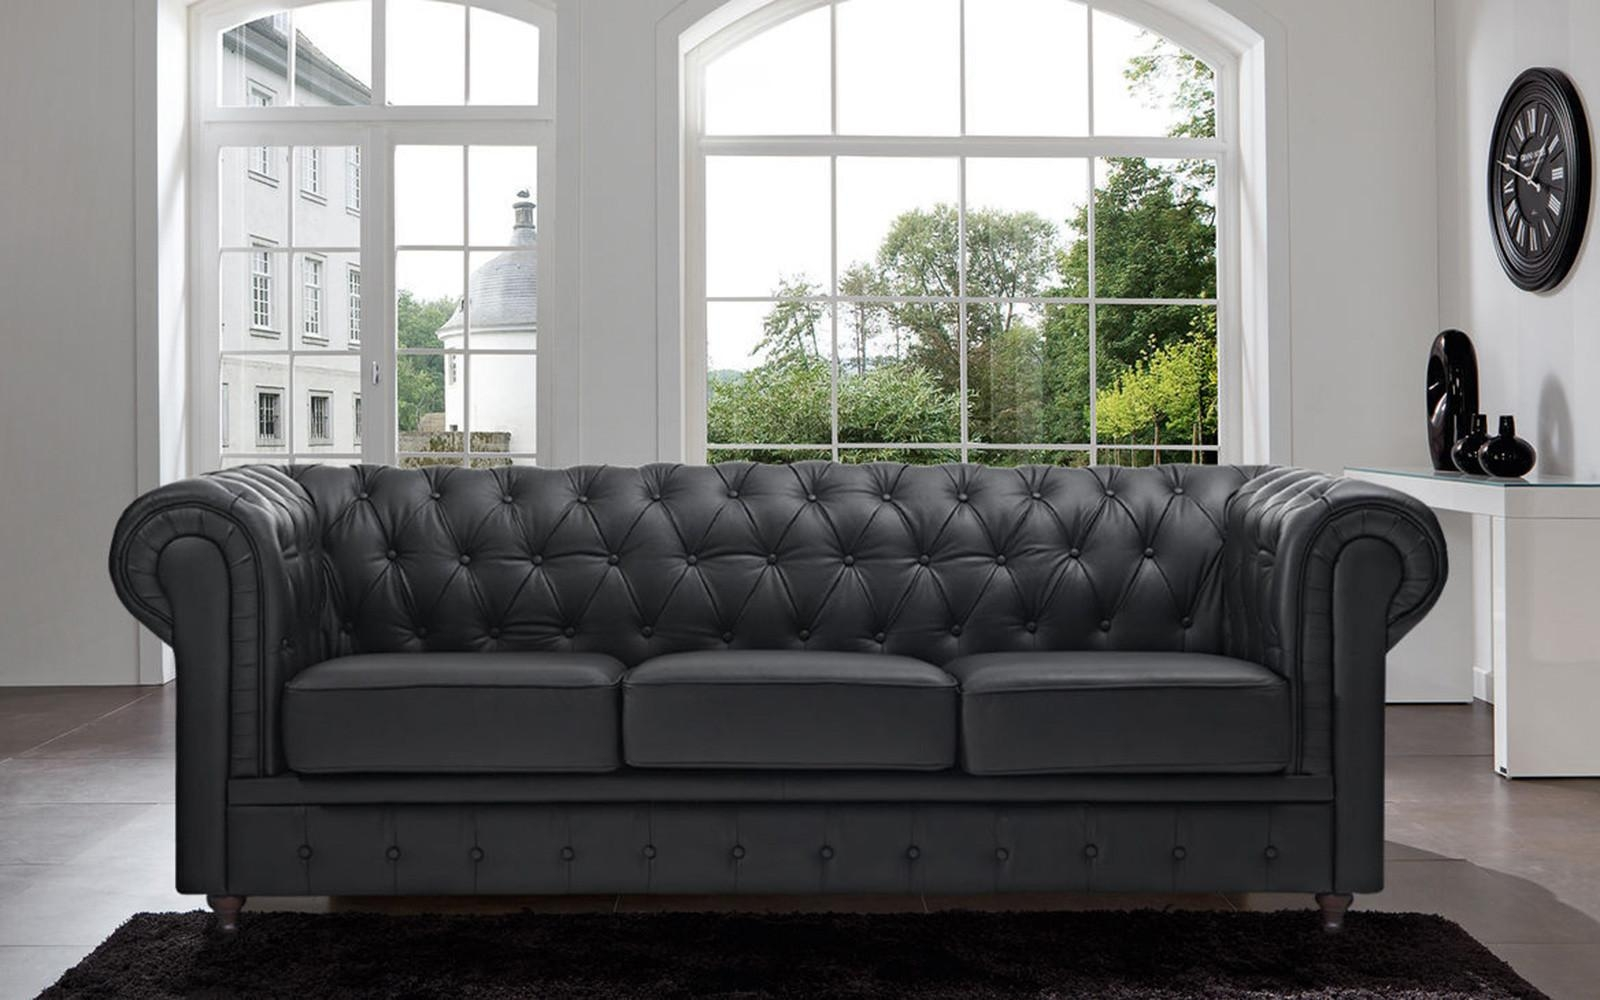 Classic Scroll Arm Tufted Bonded Leather Chesterfield Large Sofa Intended For Bonded Leather Sofas (Image 10 of 20)